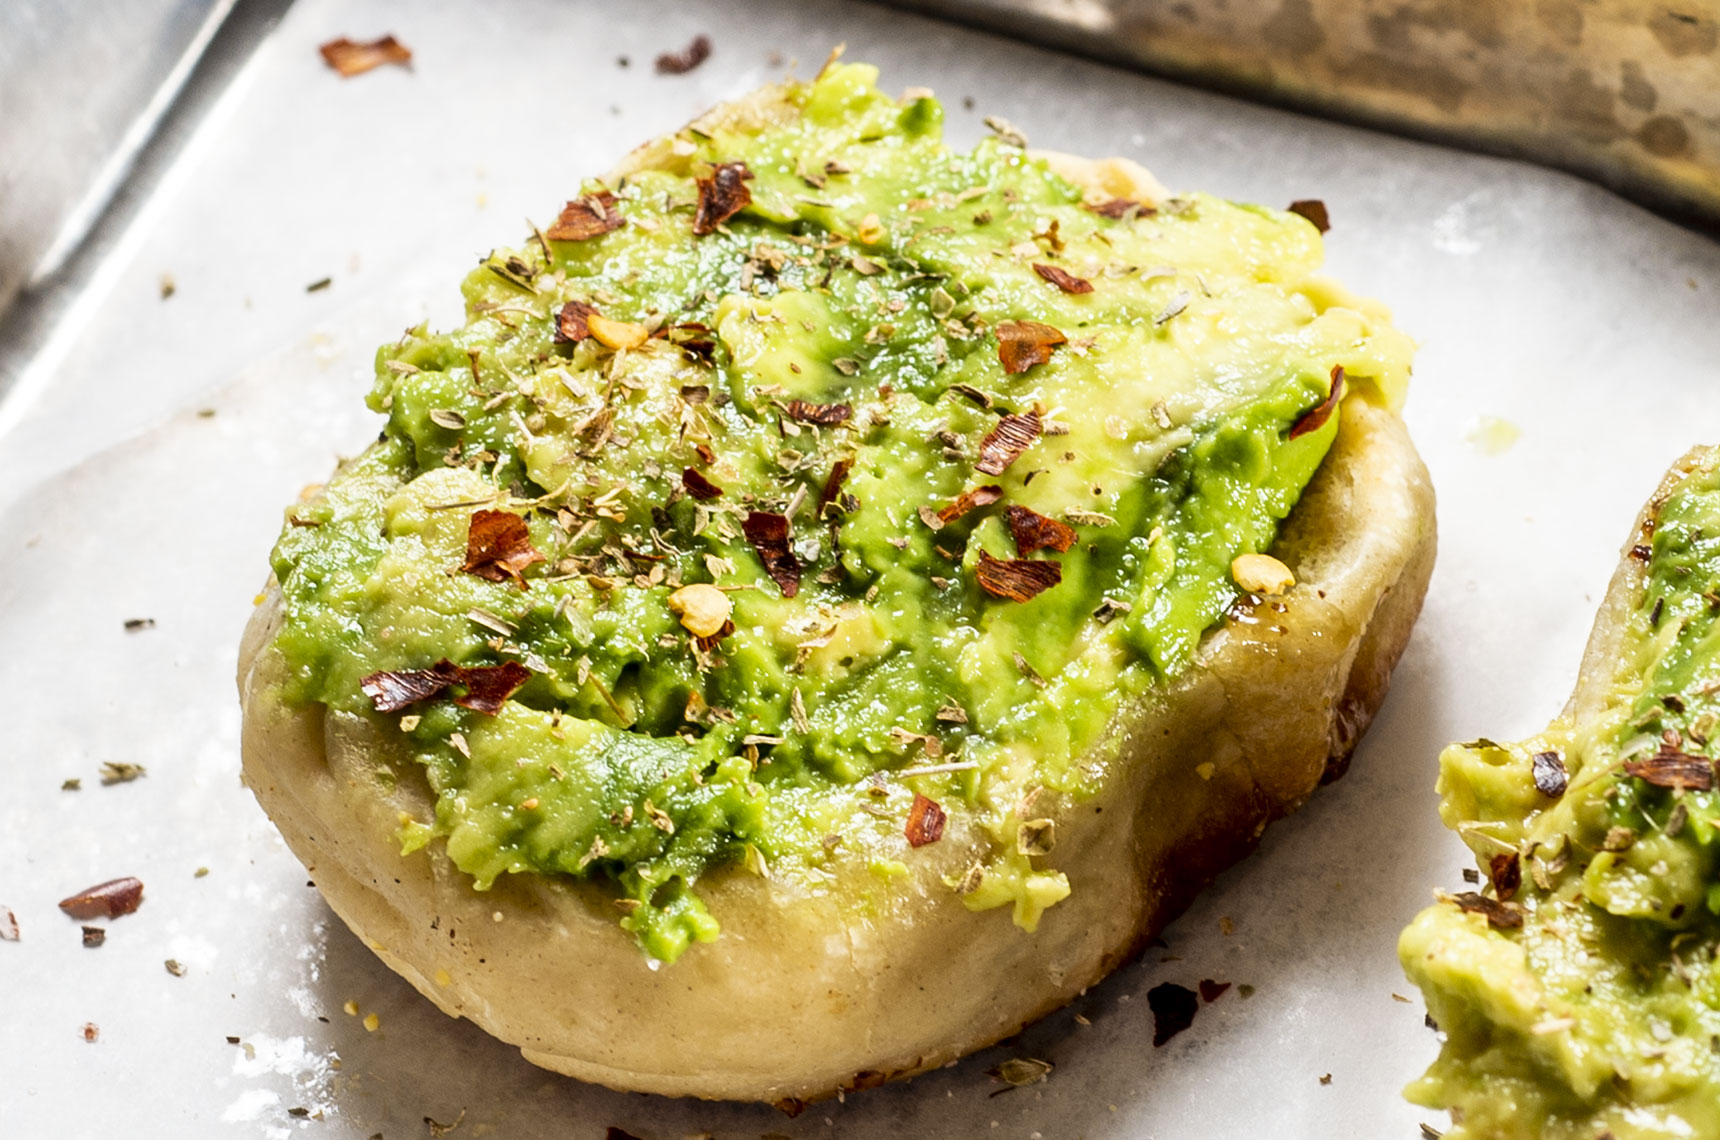 Raleigh food photography bryan regan avocado toast